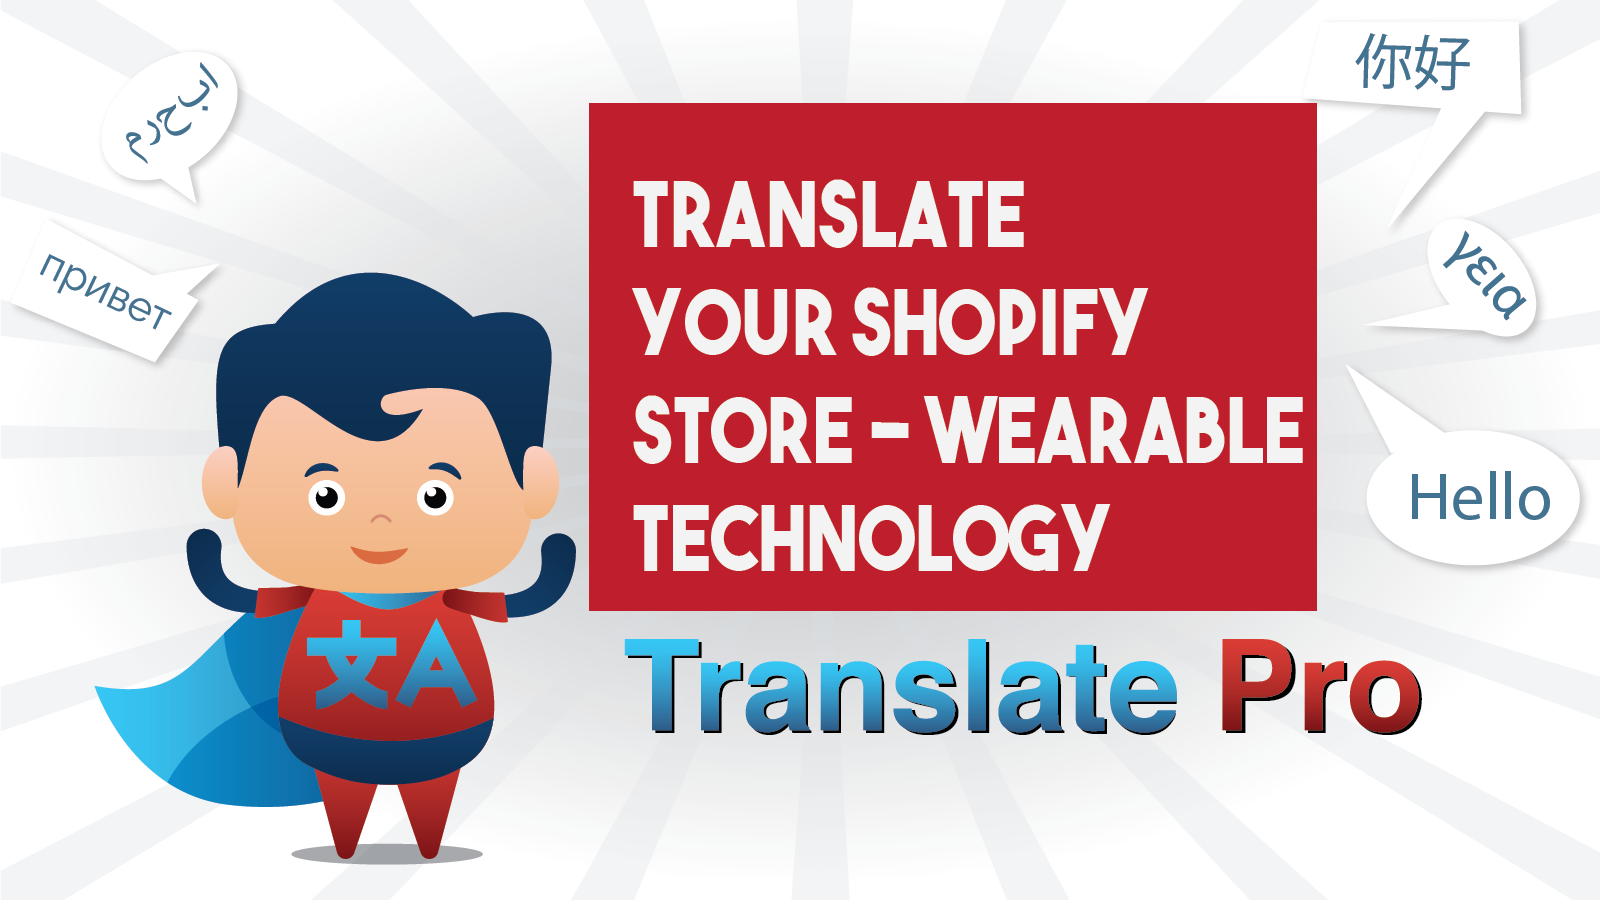 How To Translate Your Shopify Wearable Technology Store